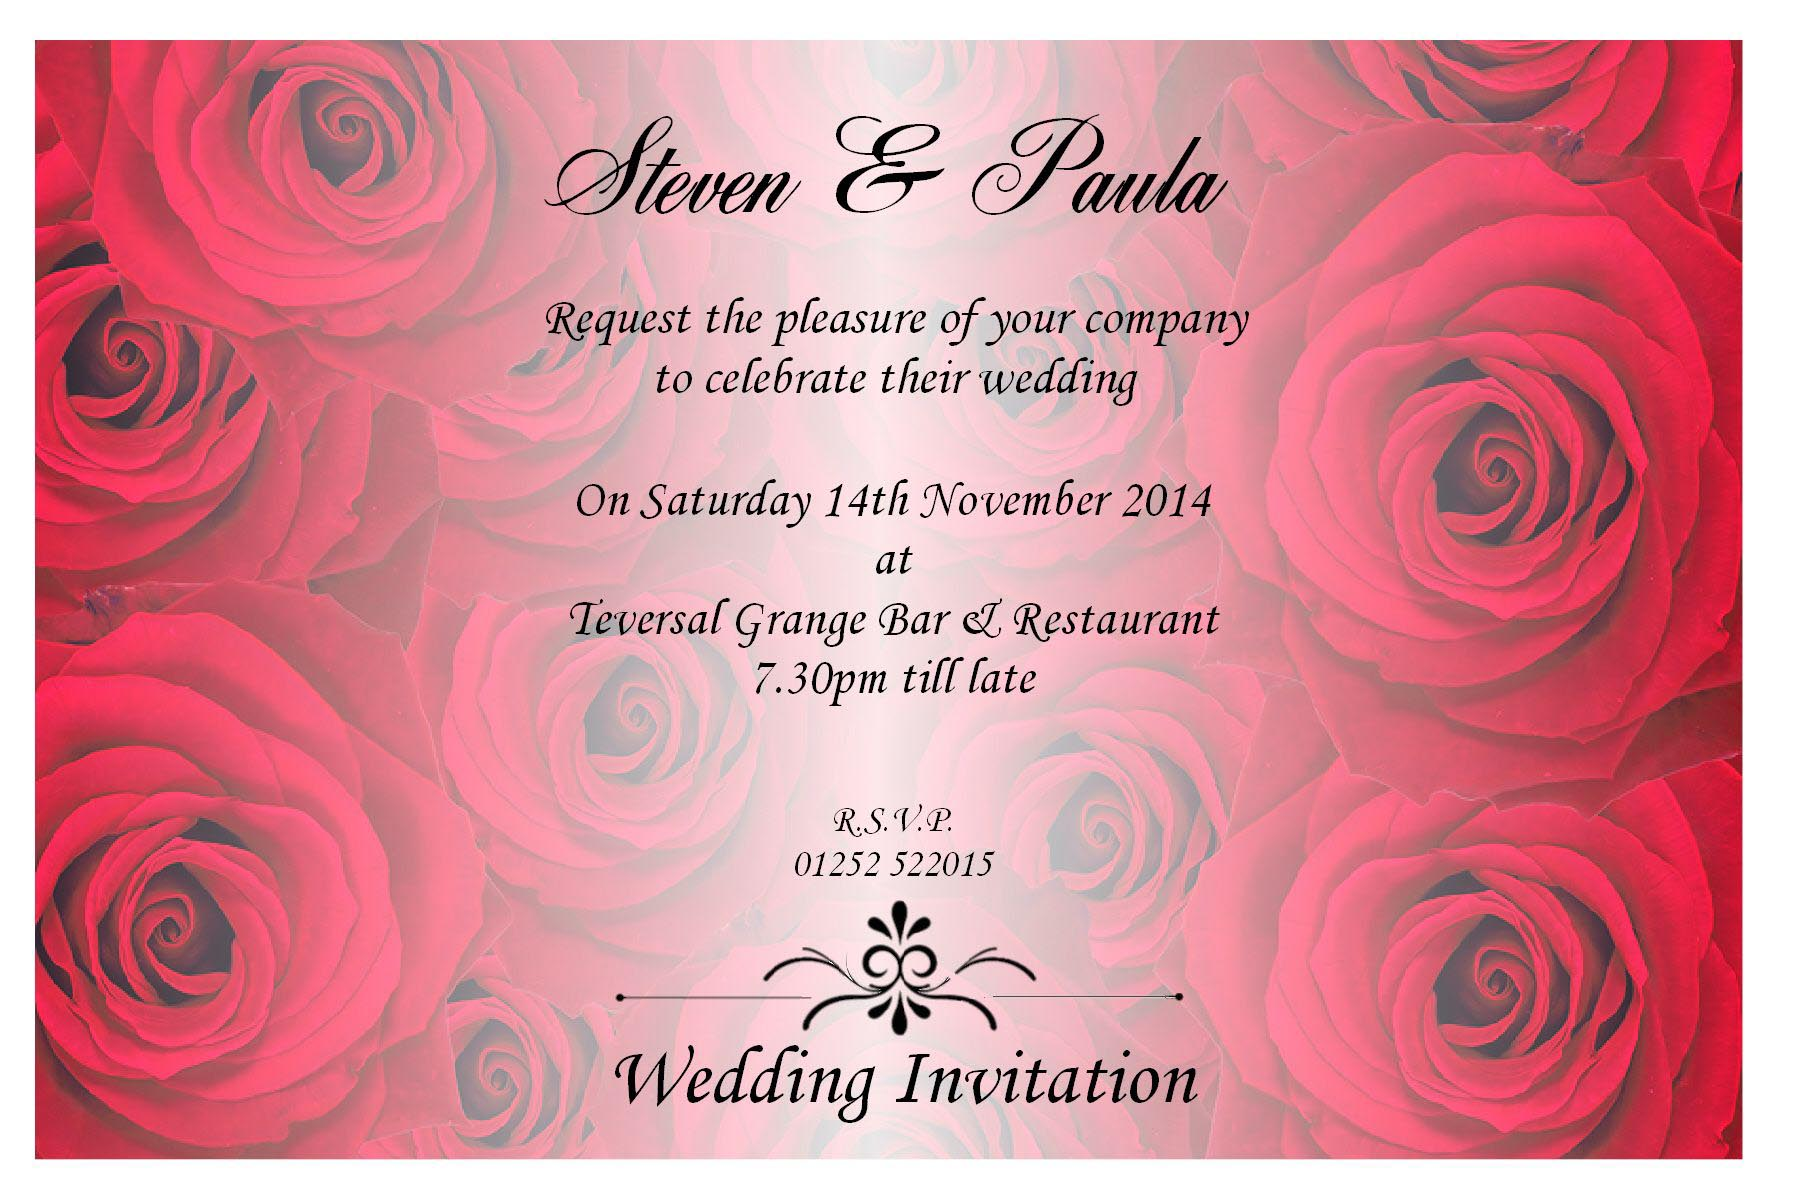 Invitation Cards For Wedding: Romantic Marriage Invitation Quotes For Indian Wedding